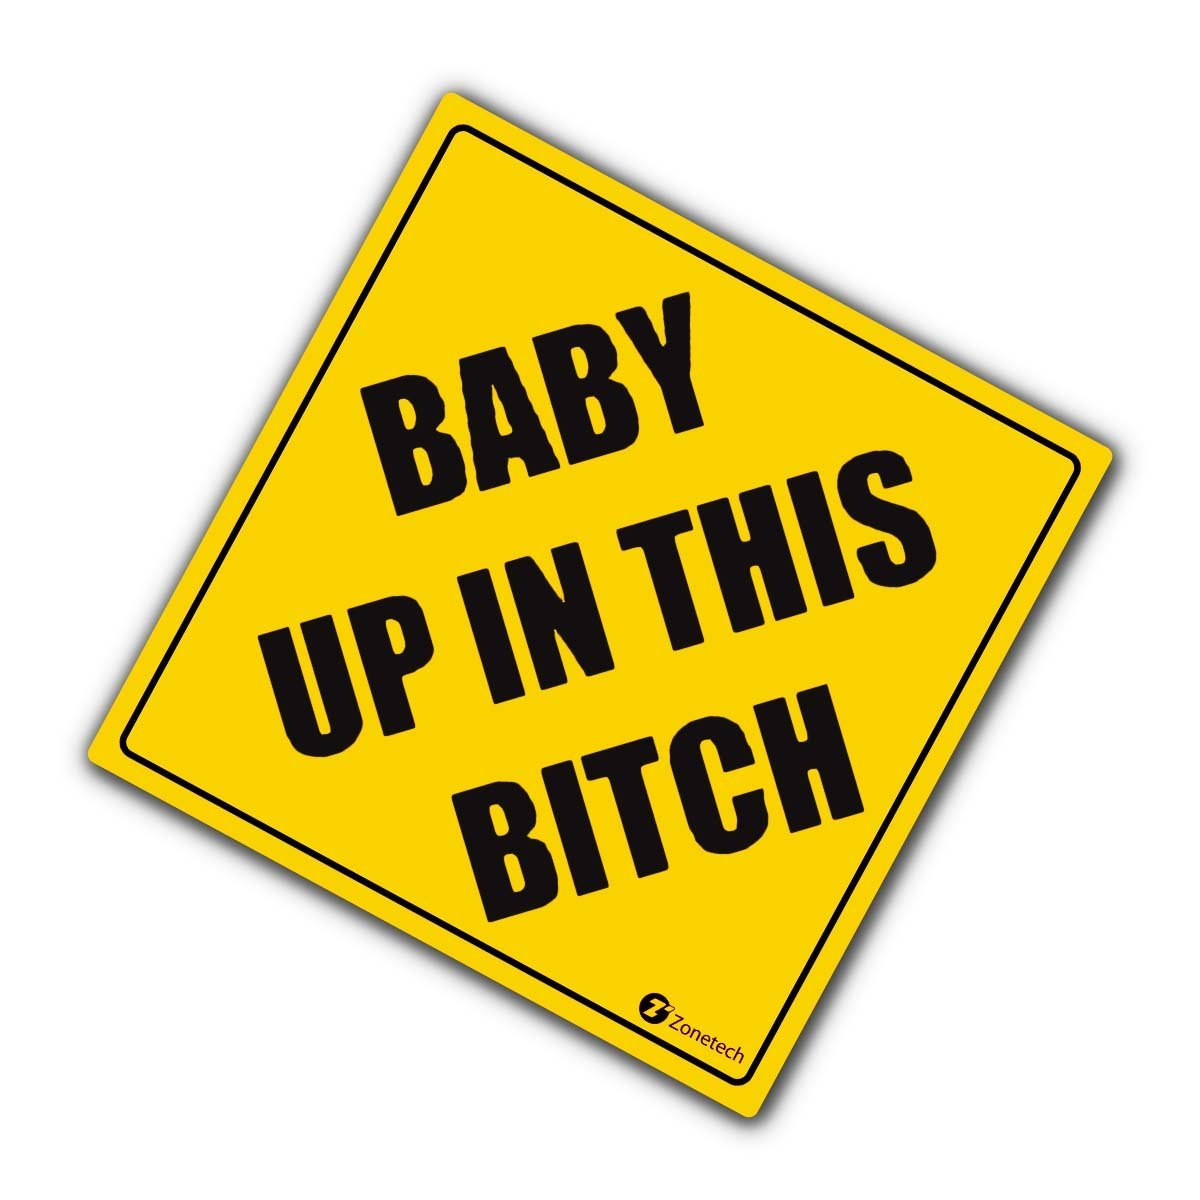 """Zone Tech """"Baby Up In This Bitch"""" Vehicle Safety Sticker - Premium Quality Convenient Reflective """"Baby Up On This Bitch"""" Vehicle Safety Funny Sign Sticker"""